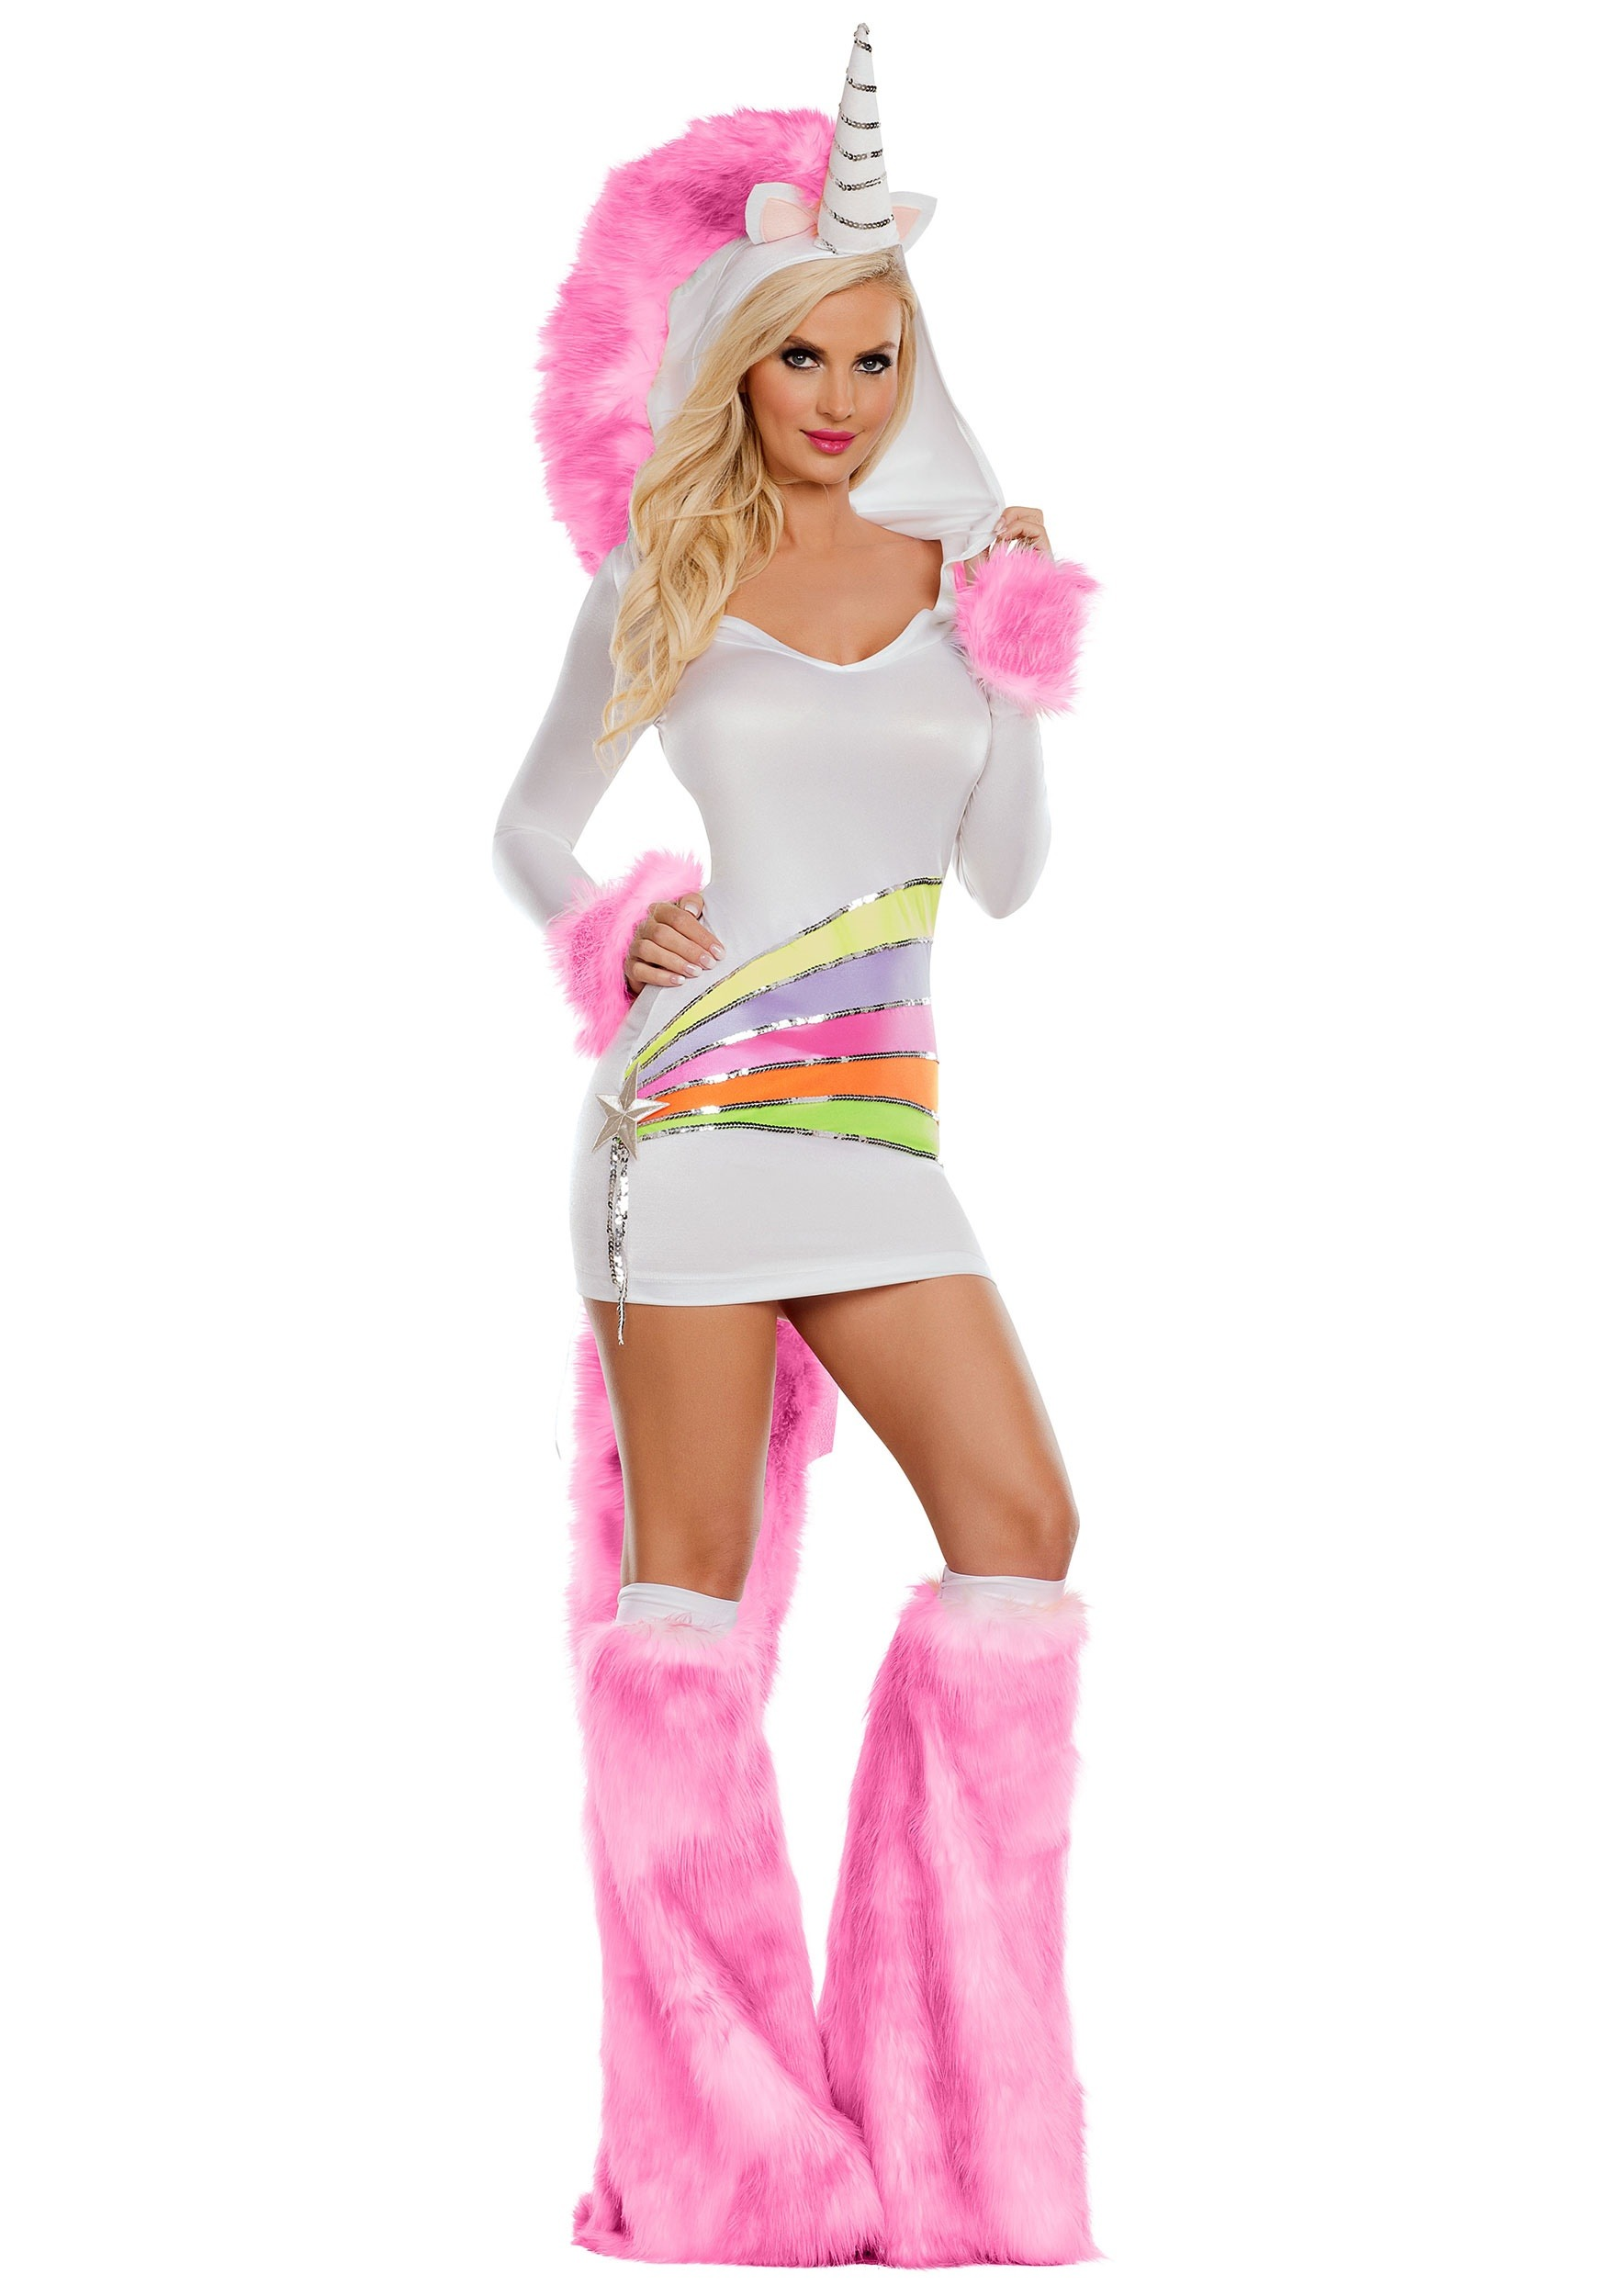 WOMENS UNICORN RAINBOW FANTASY COSTUME women includes Dress boot covers tail